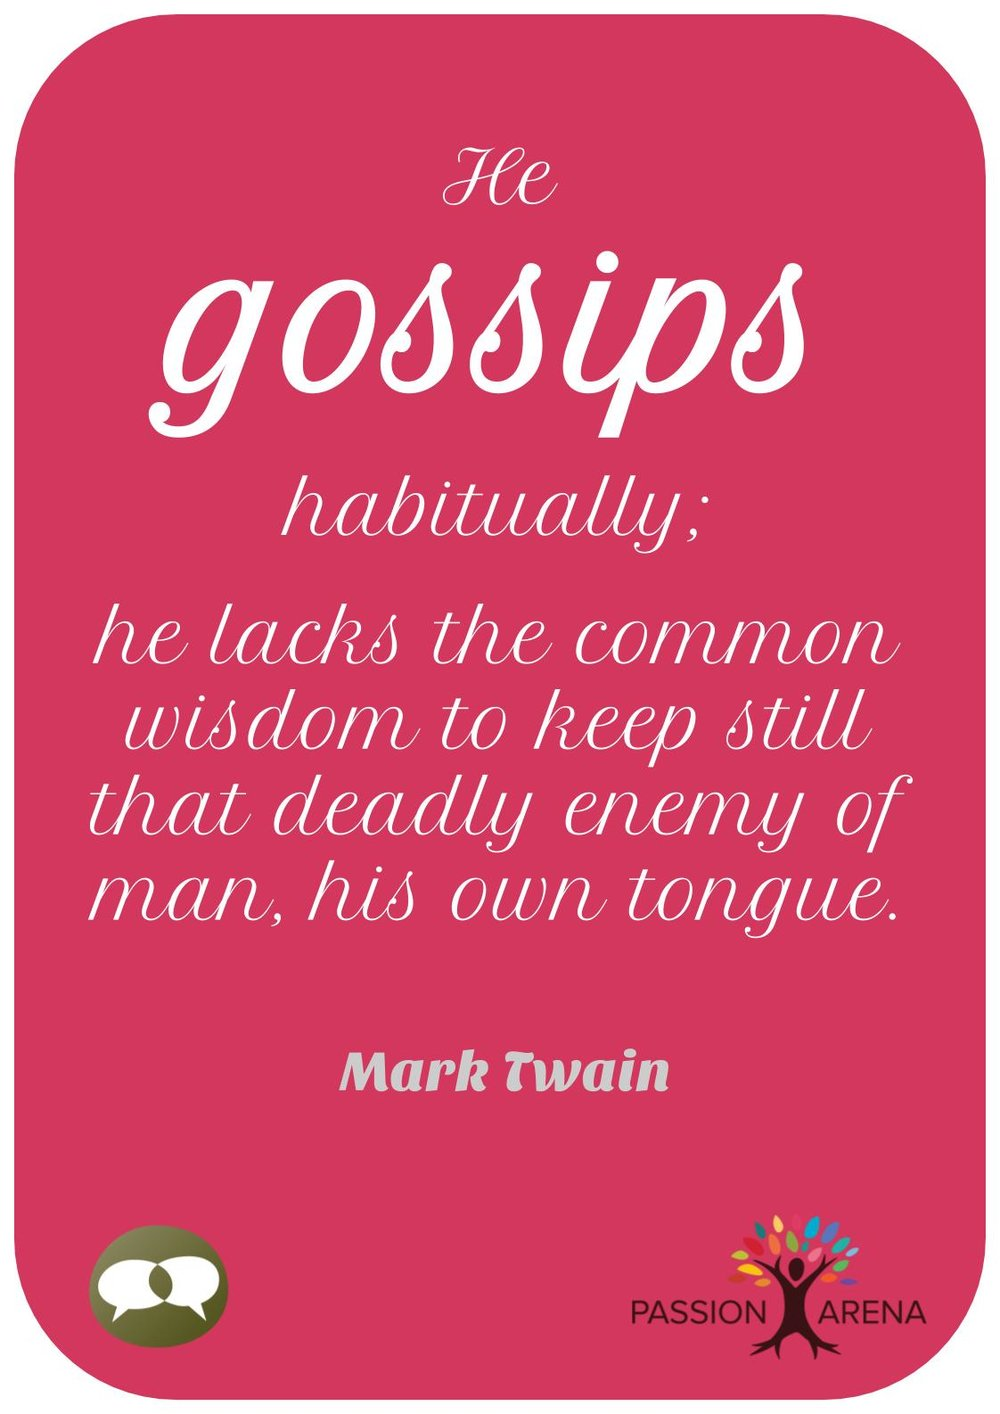 Intro-3-36. What's the problem with gossip?